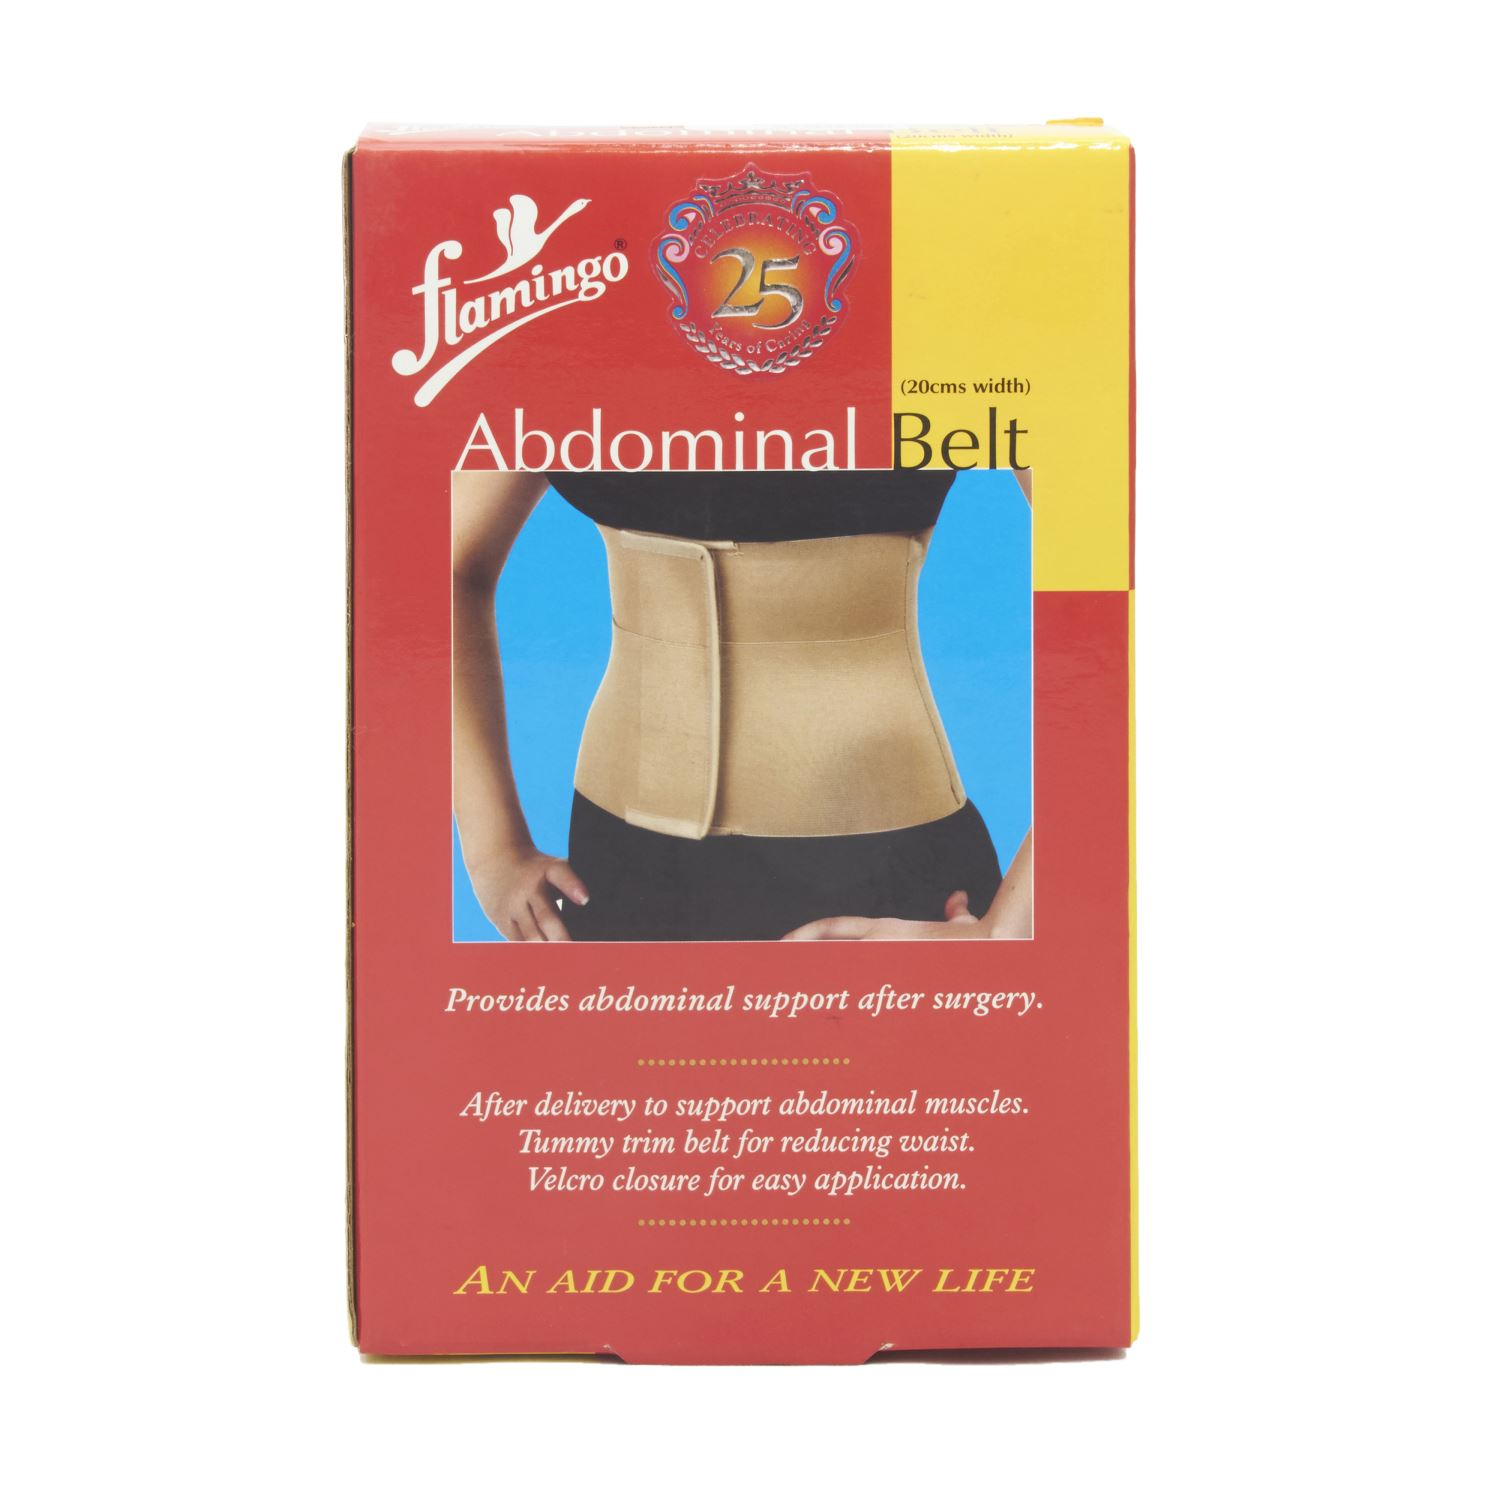 Flamingo Abdominal Belt (Oc-2002) - Large